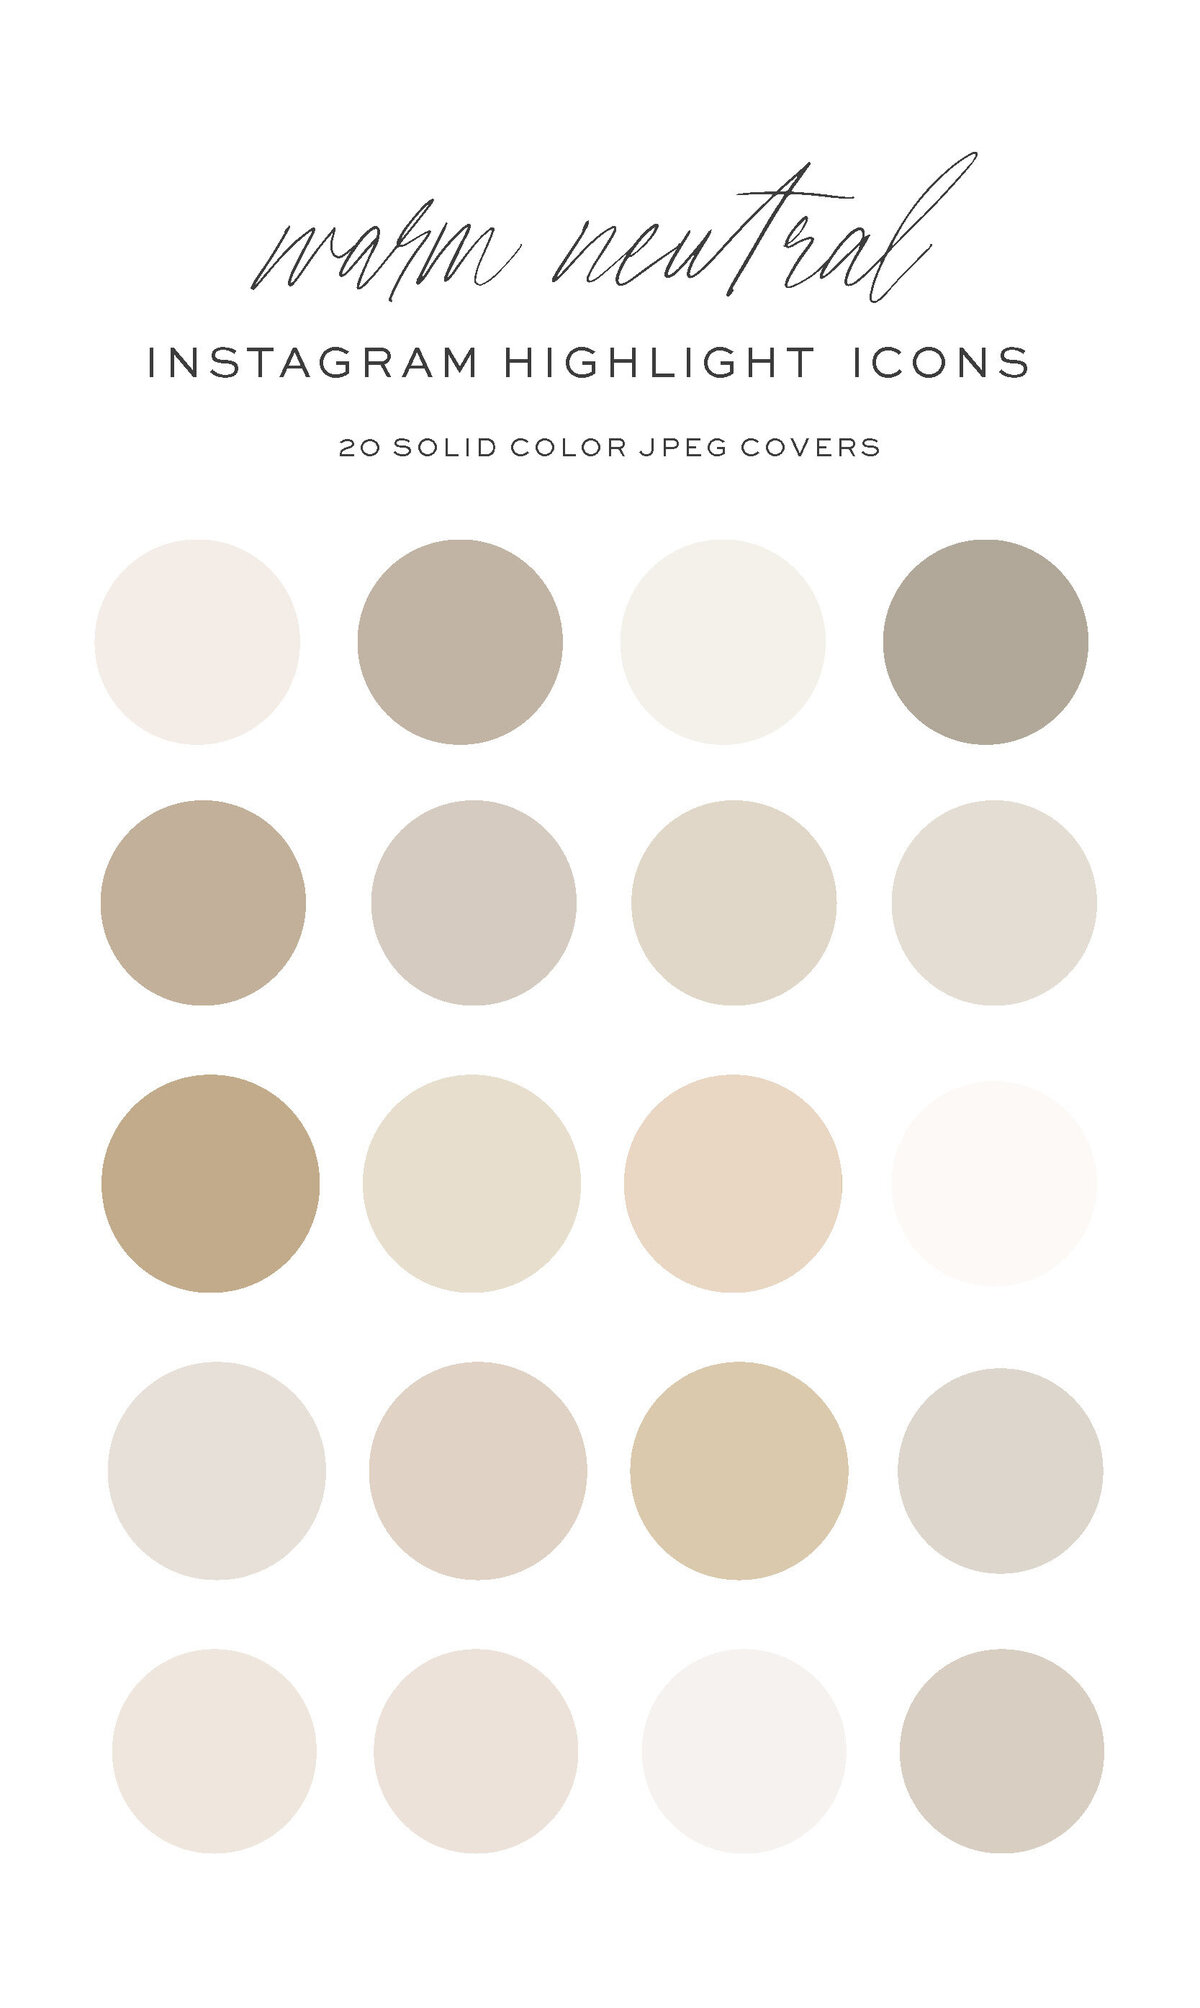 Warm Tan Neutral Instagram Highlight Covers